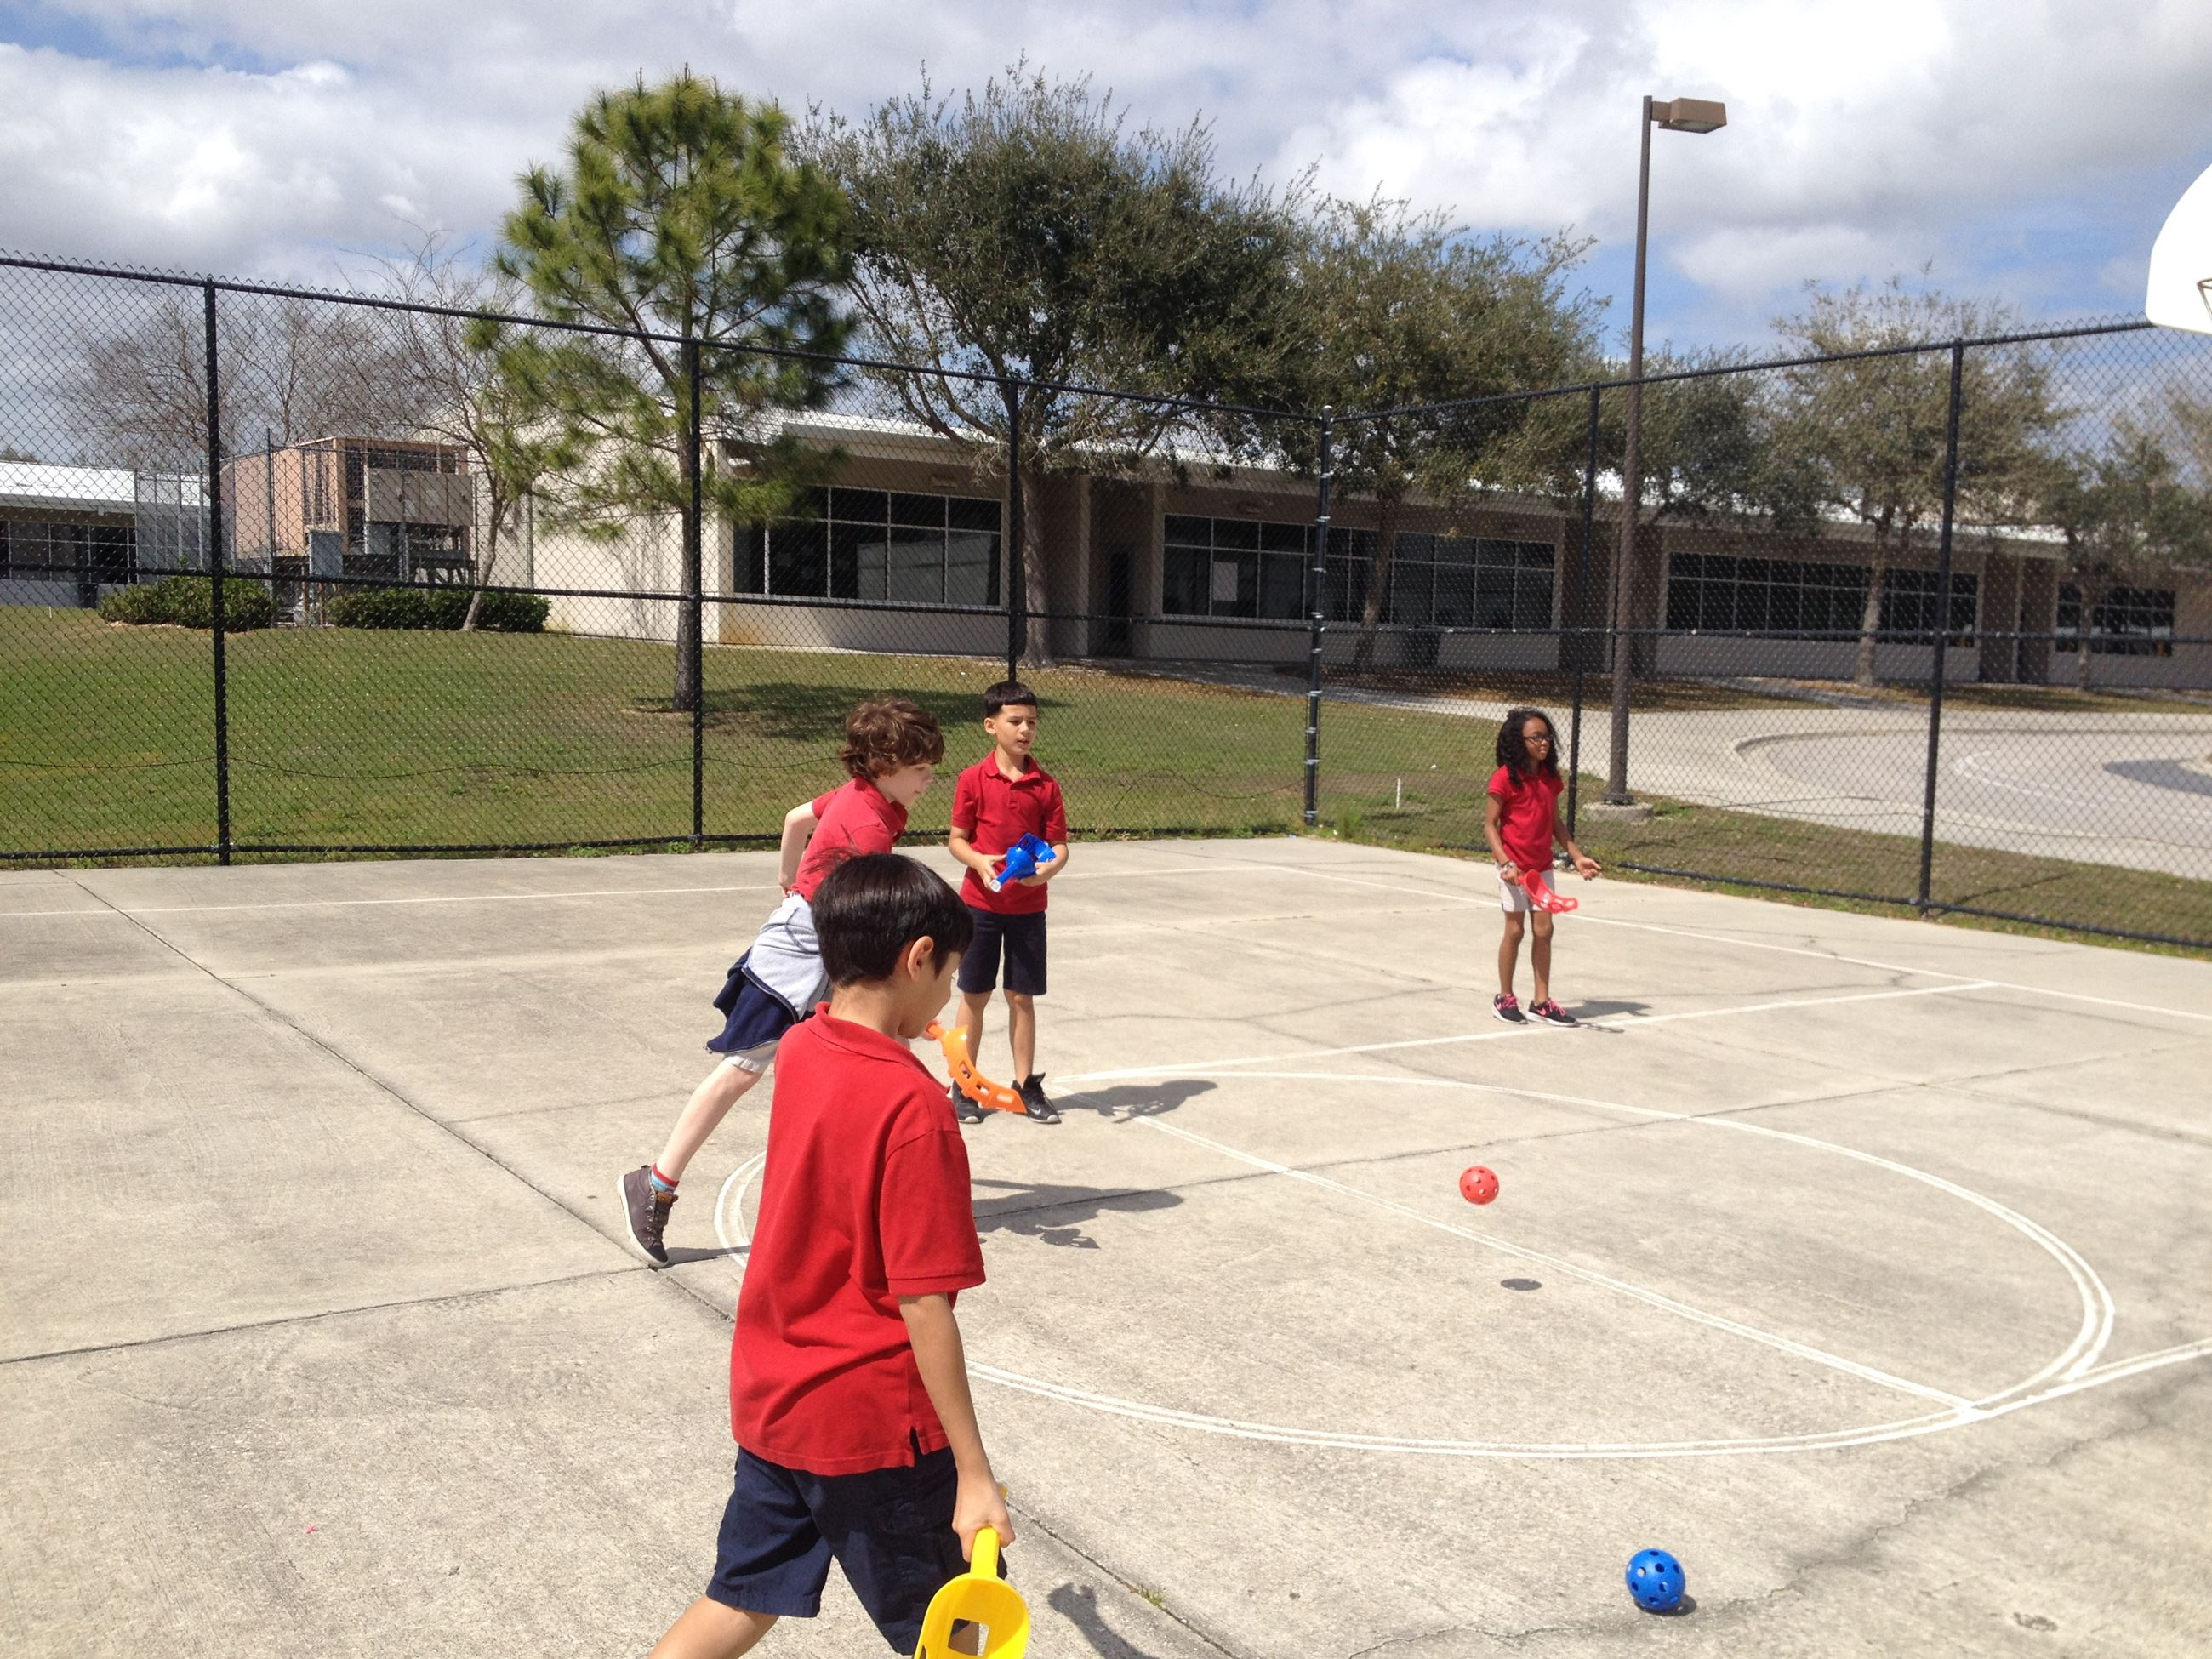 Students playing a catch and release type game for P.E.